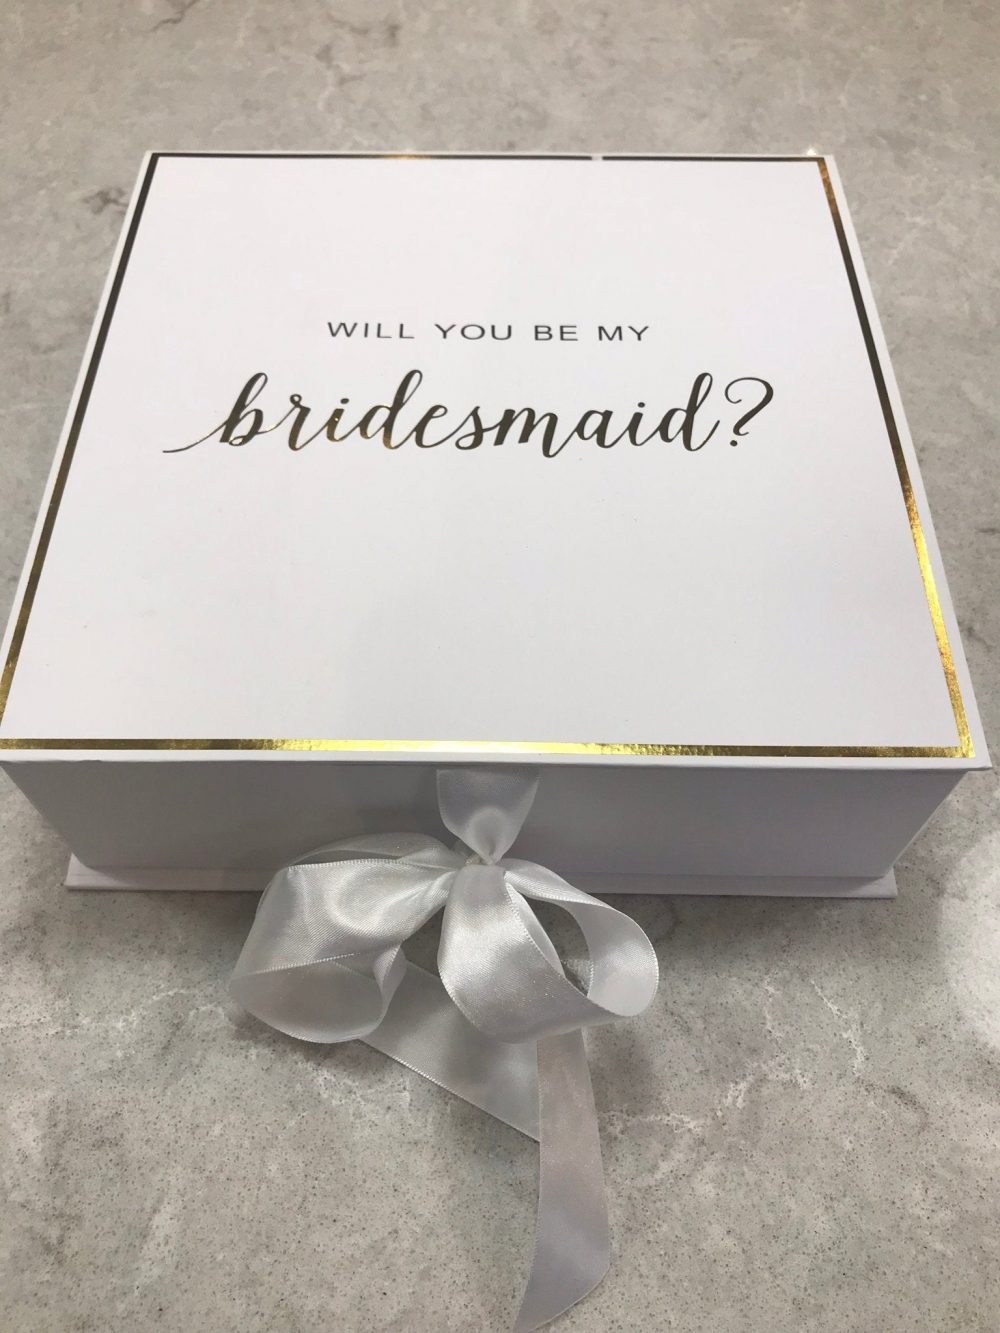 Bridesmaid Proposal Box, Will You Be My Bridesmaid, Bridal Party Gift, Gift, Shower Favour